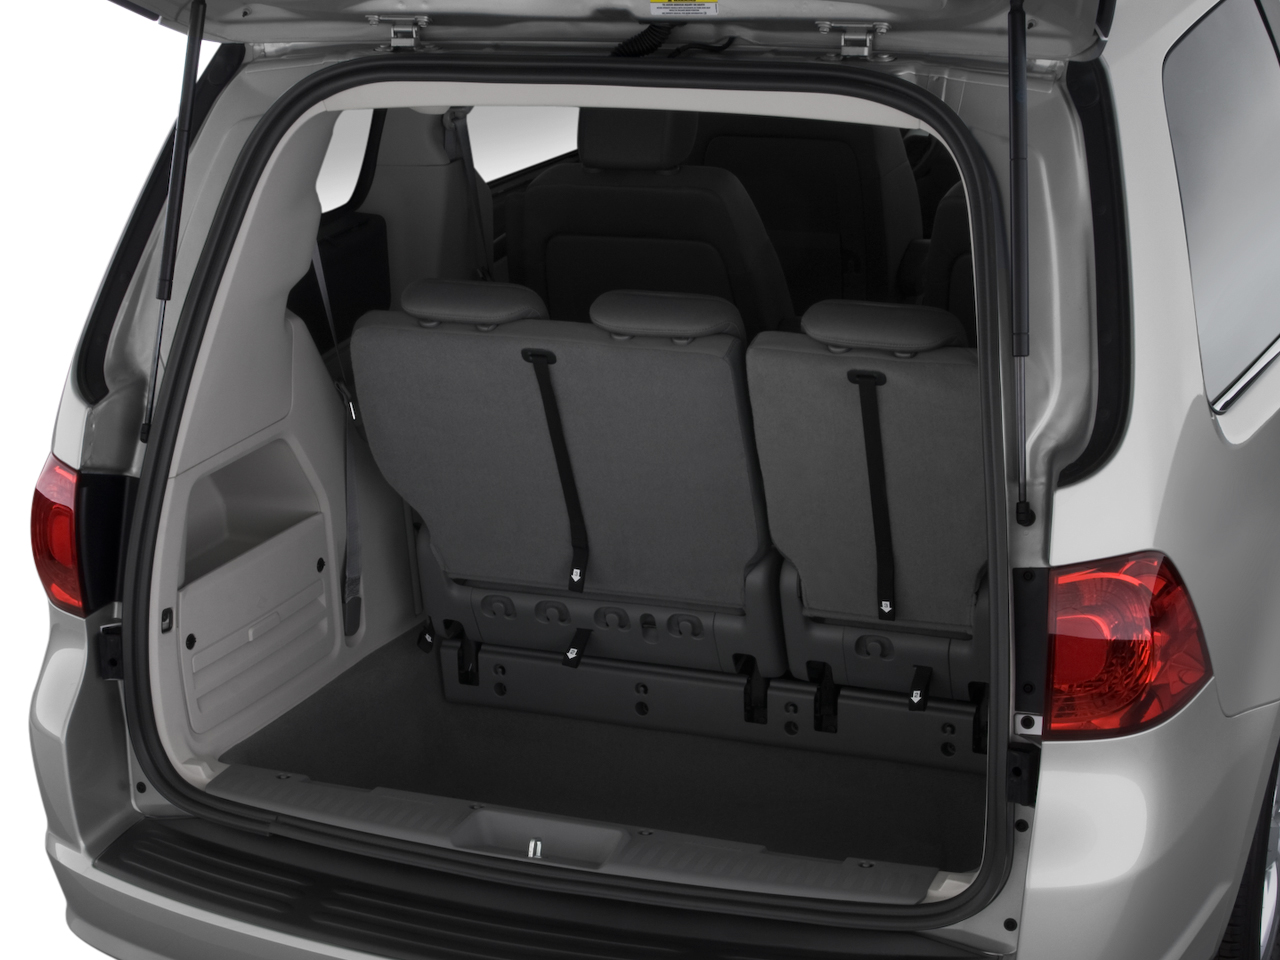 VOLKSWAGEN ROUTAN - Review and photos